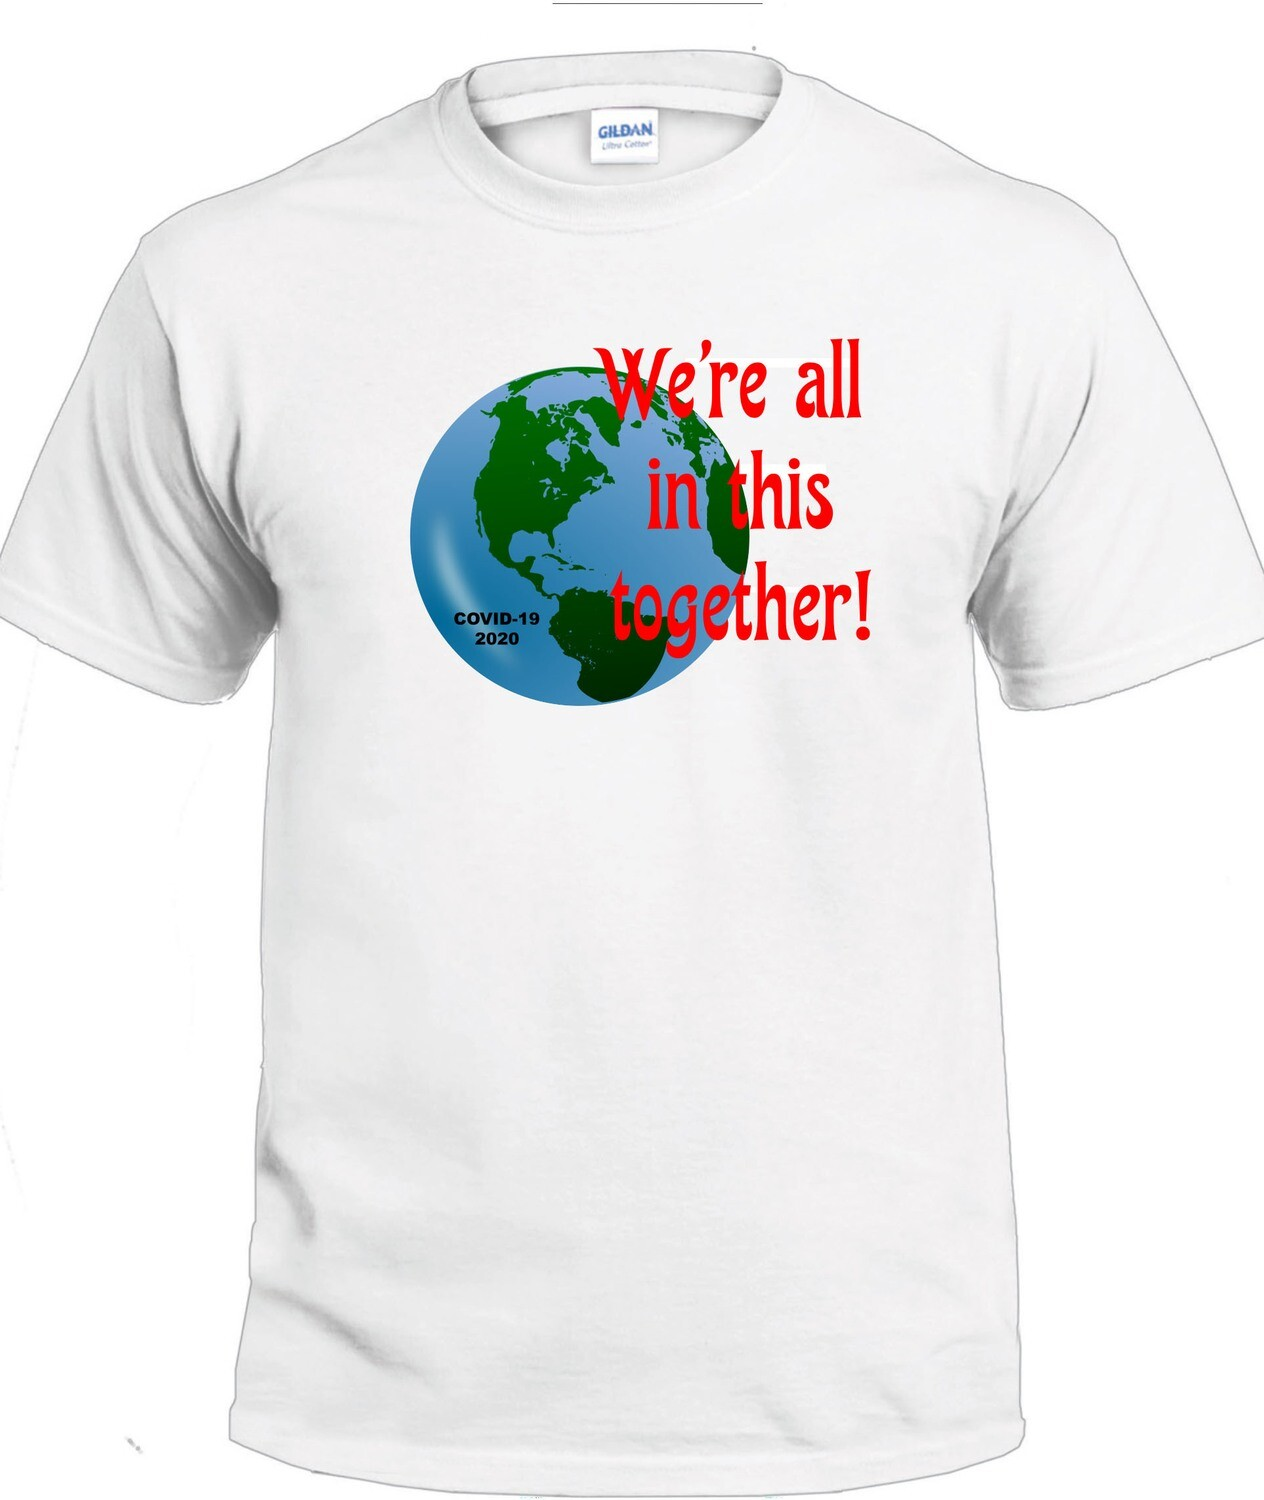 Together T-Shirt (Full Color on White)